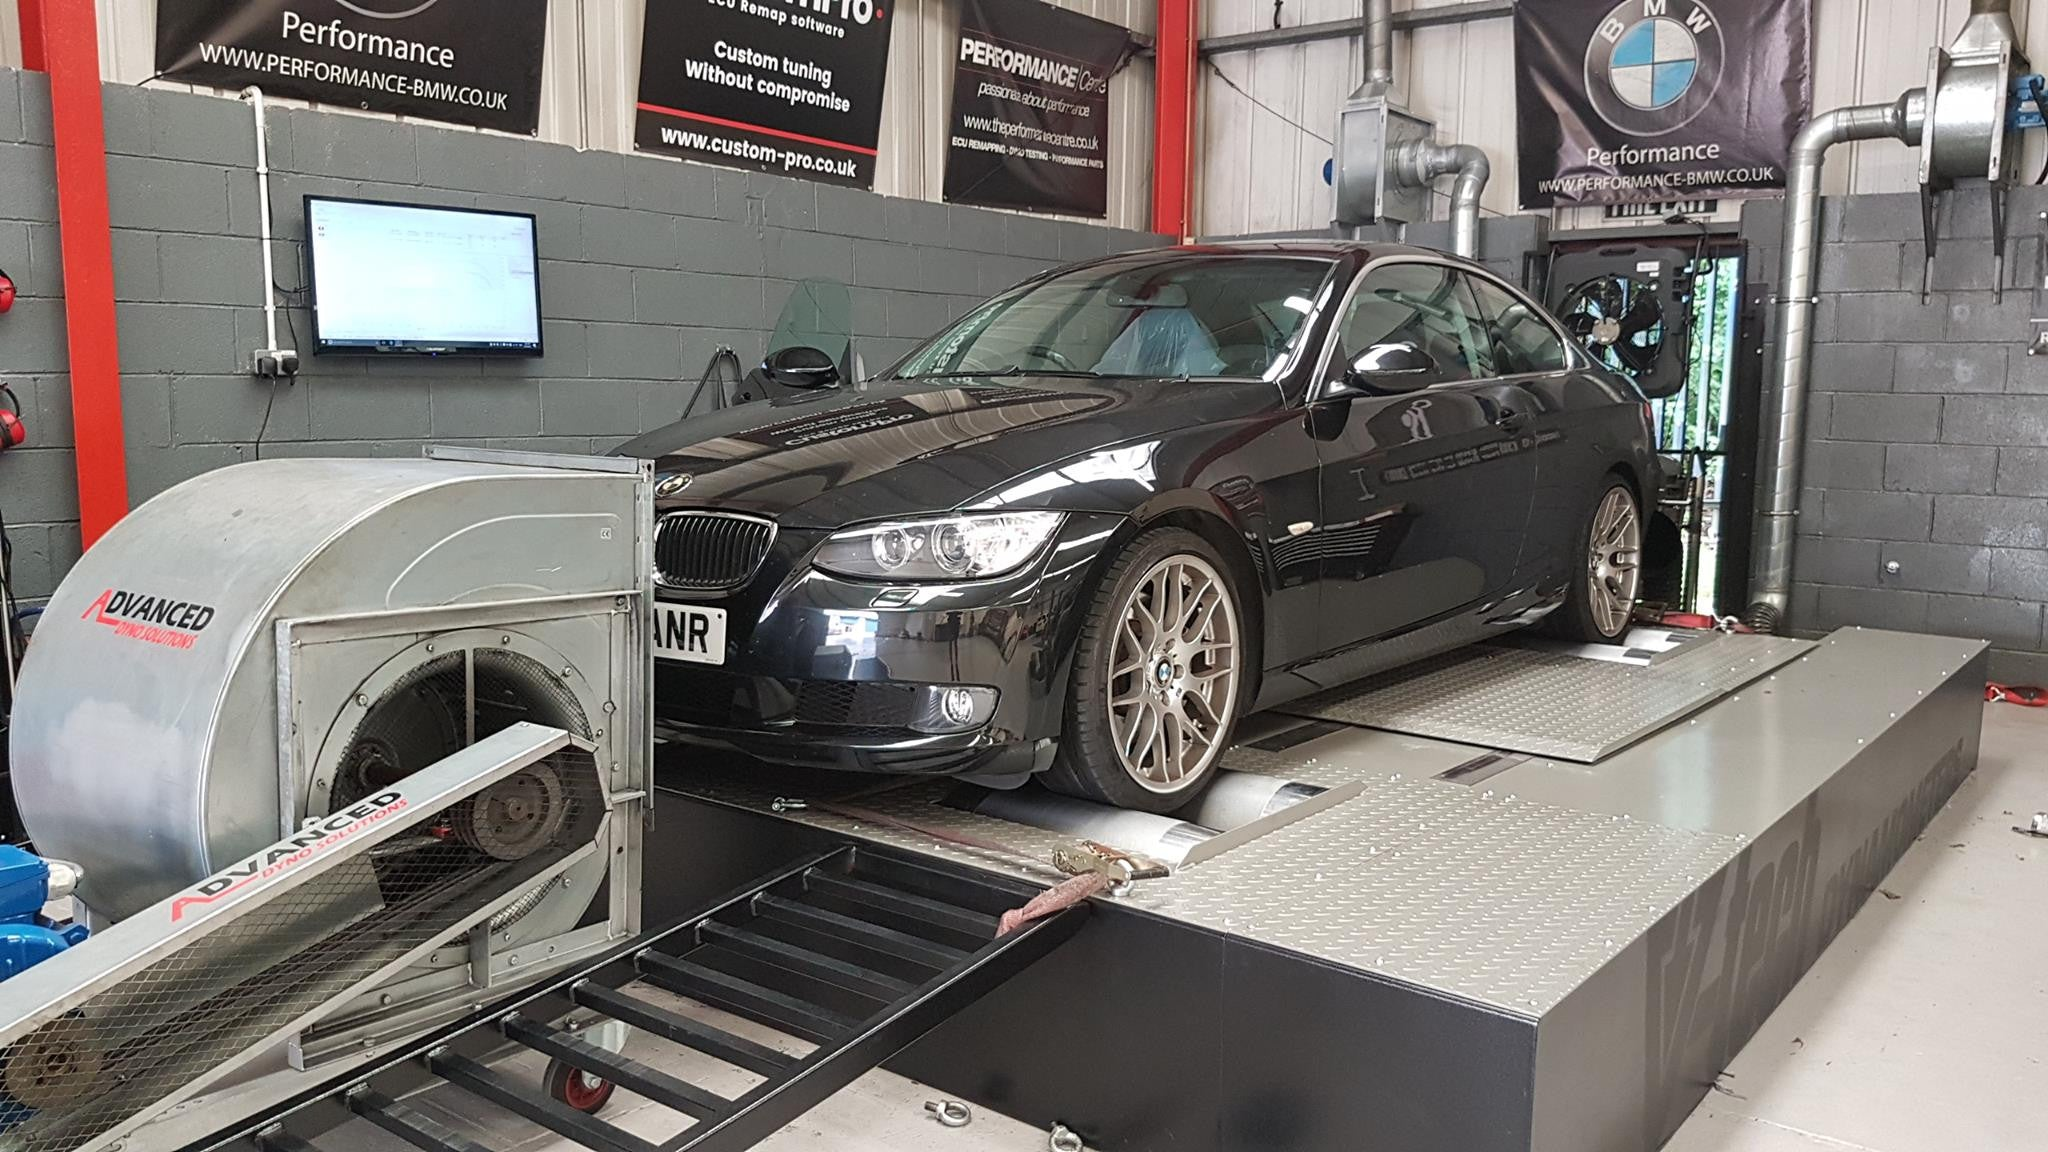 BMW 330d 231 - CustomPro remap